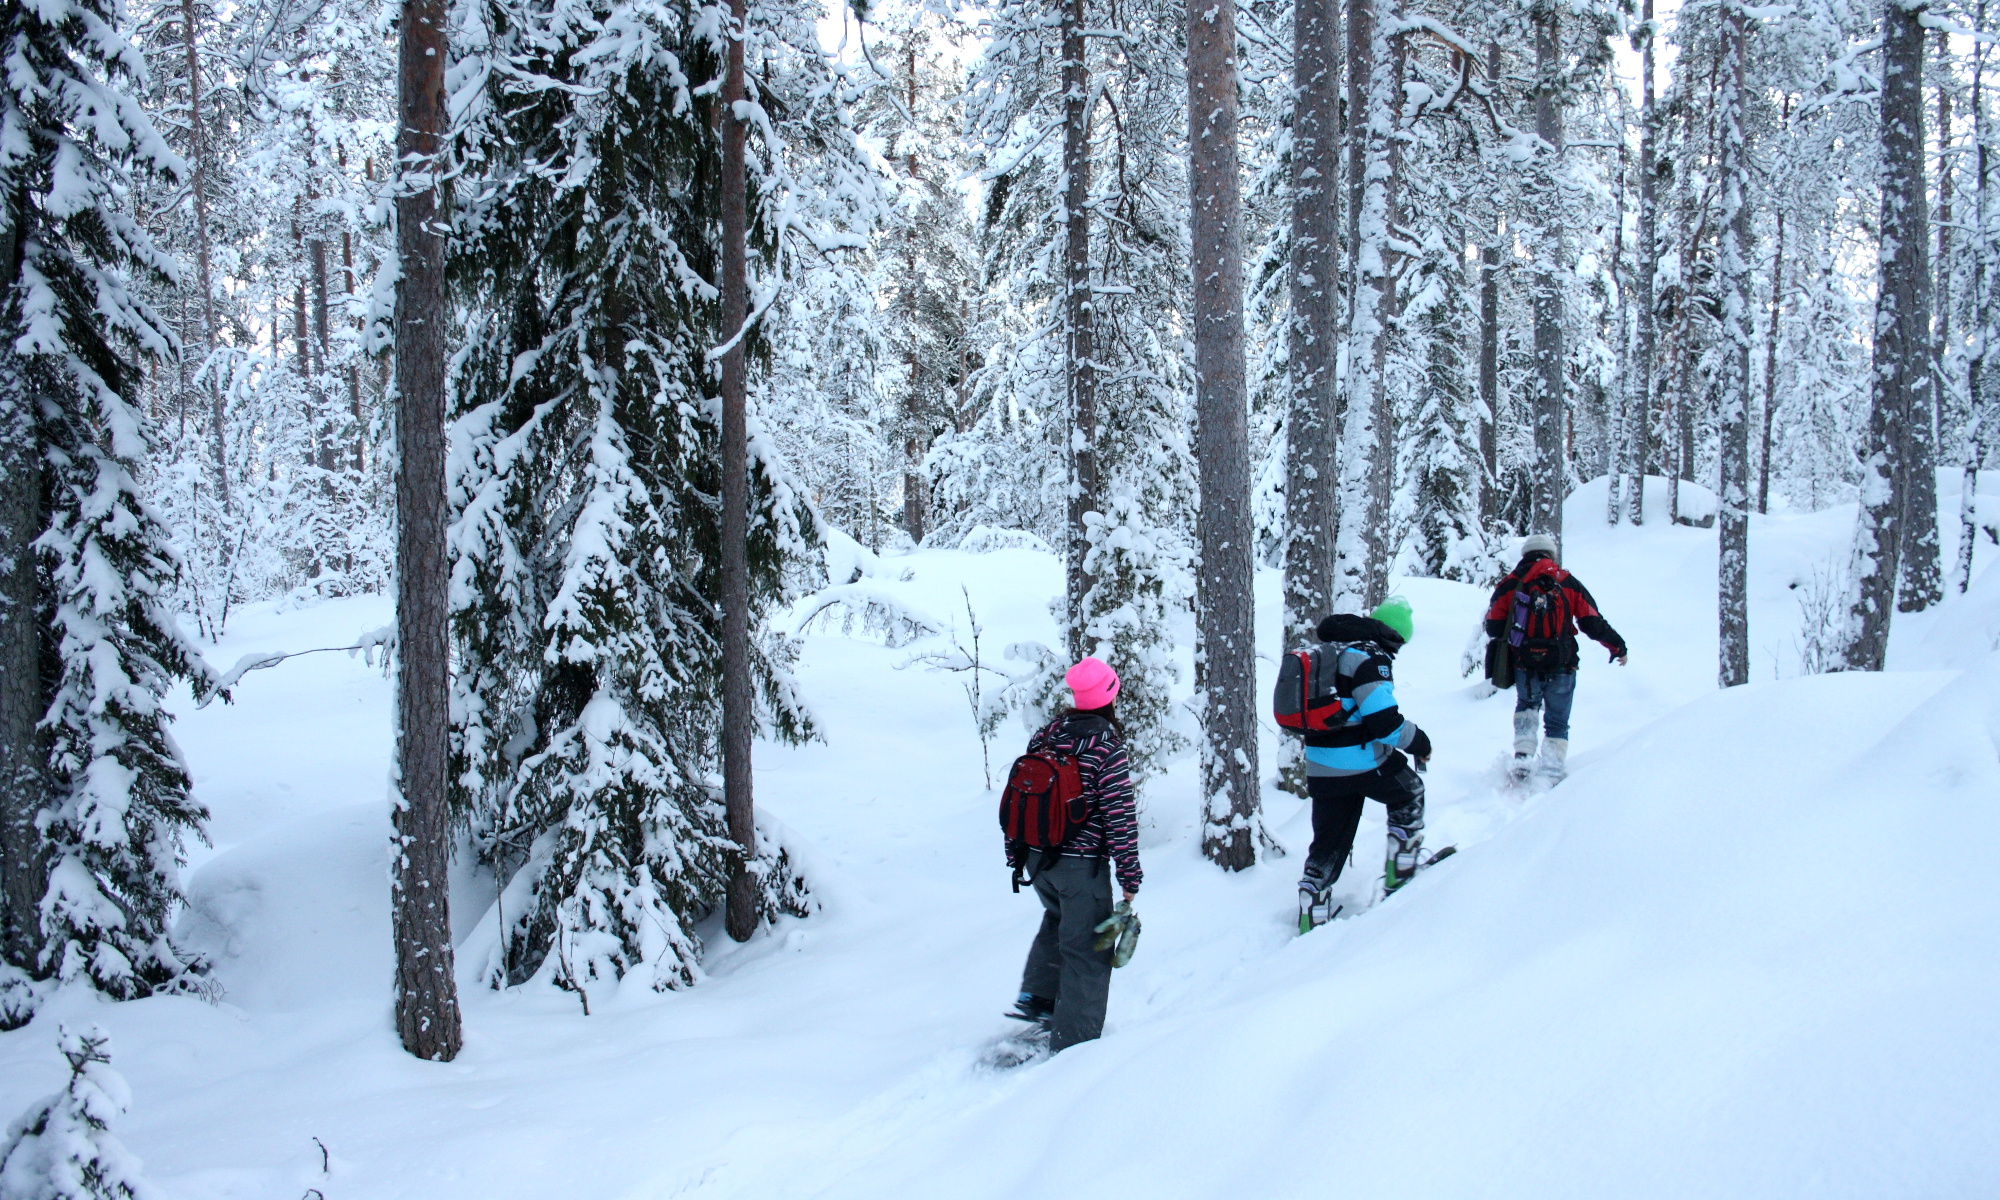 Winter Hiking in Nuuksio National Park near Helsinki